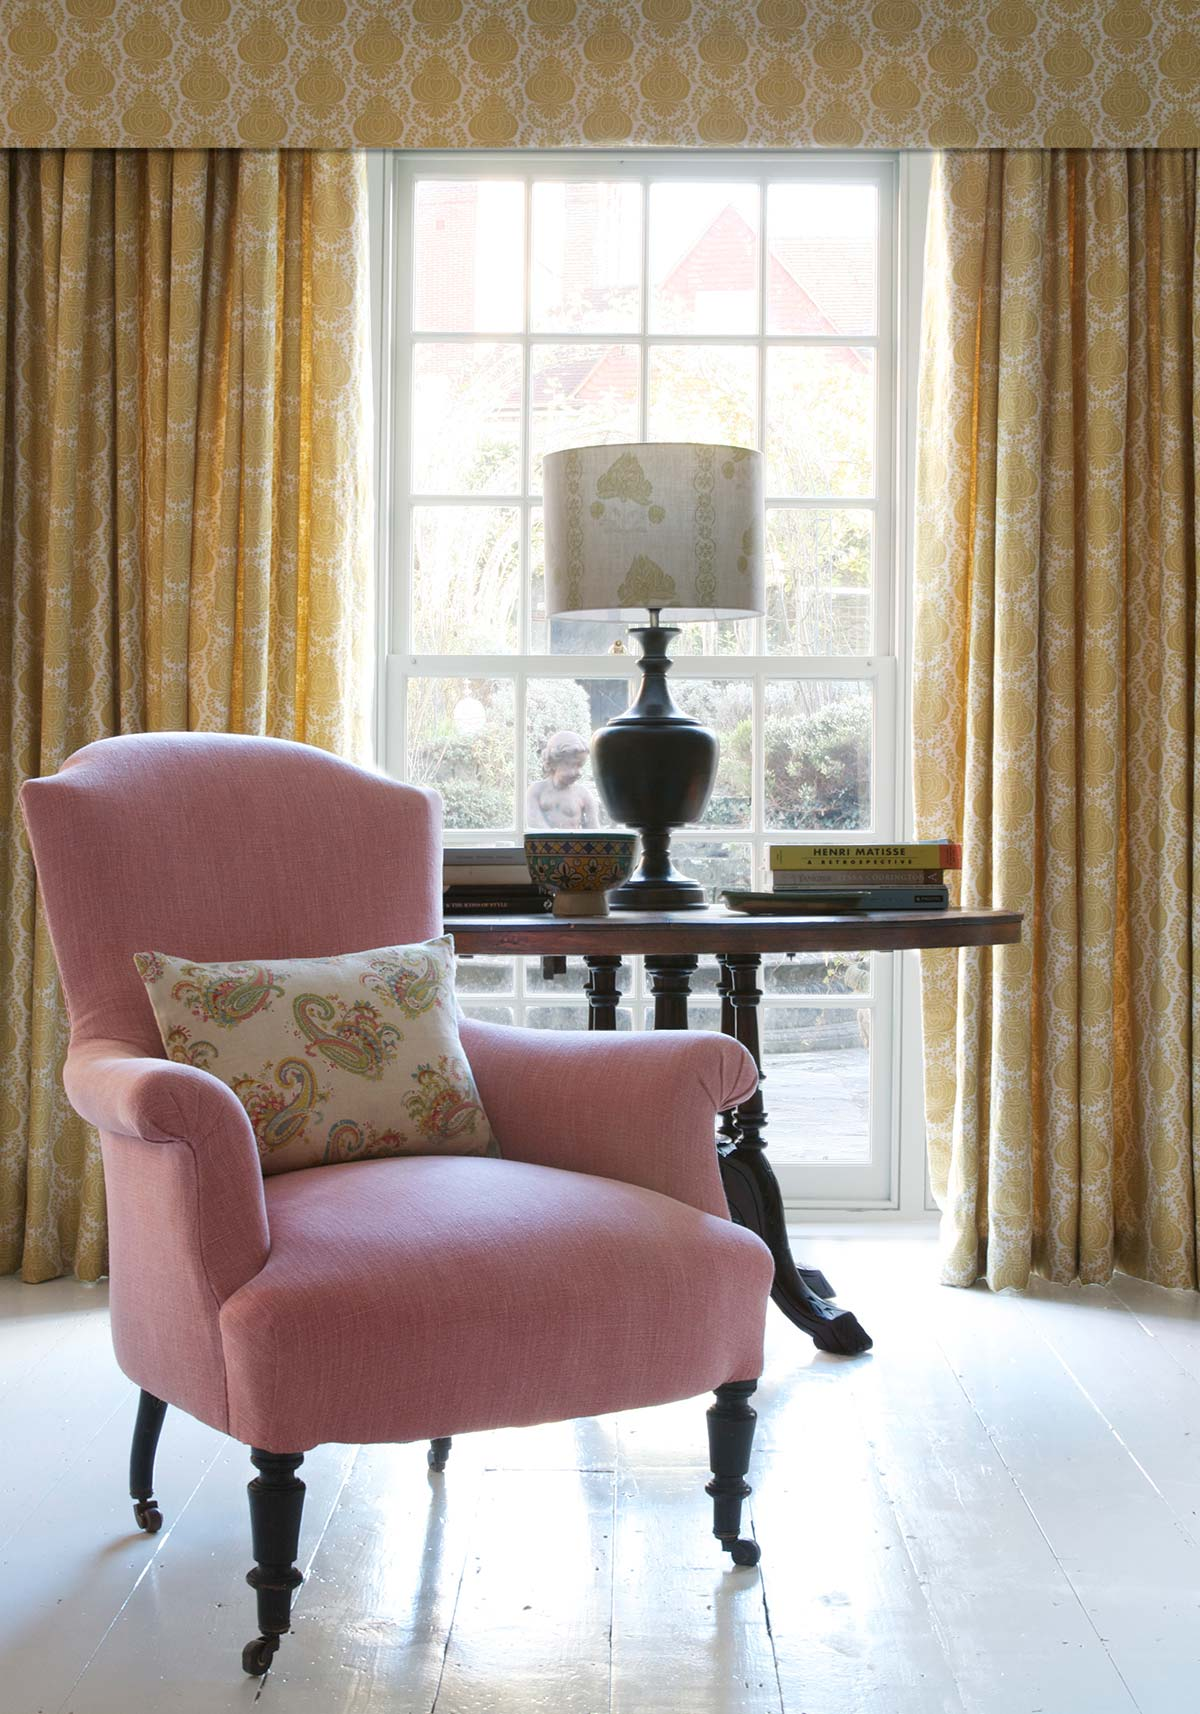 Margot-Yellow-Curtains-&-Pink-Stonewash-Chair-02